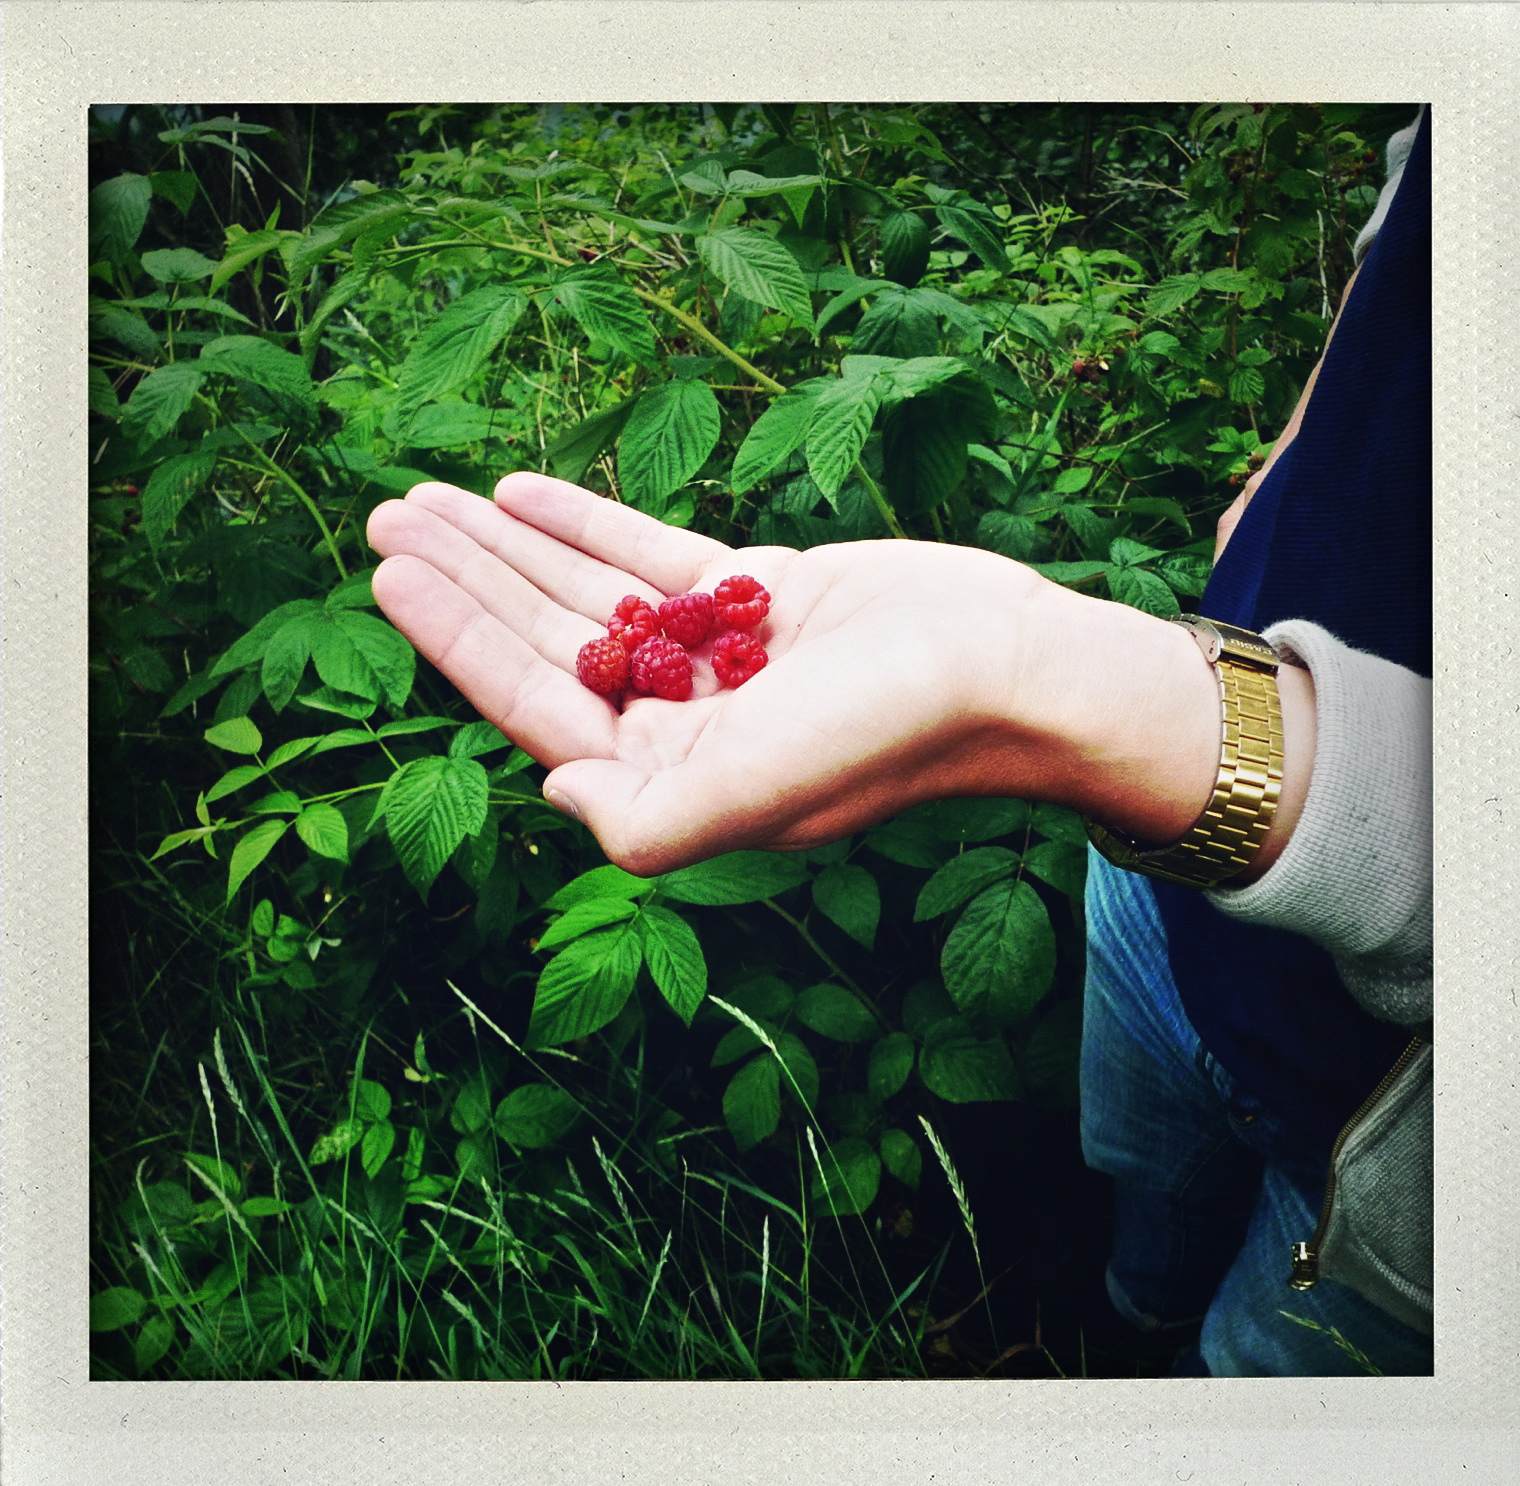 Permission to eat roadside raspberries.